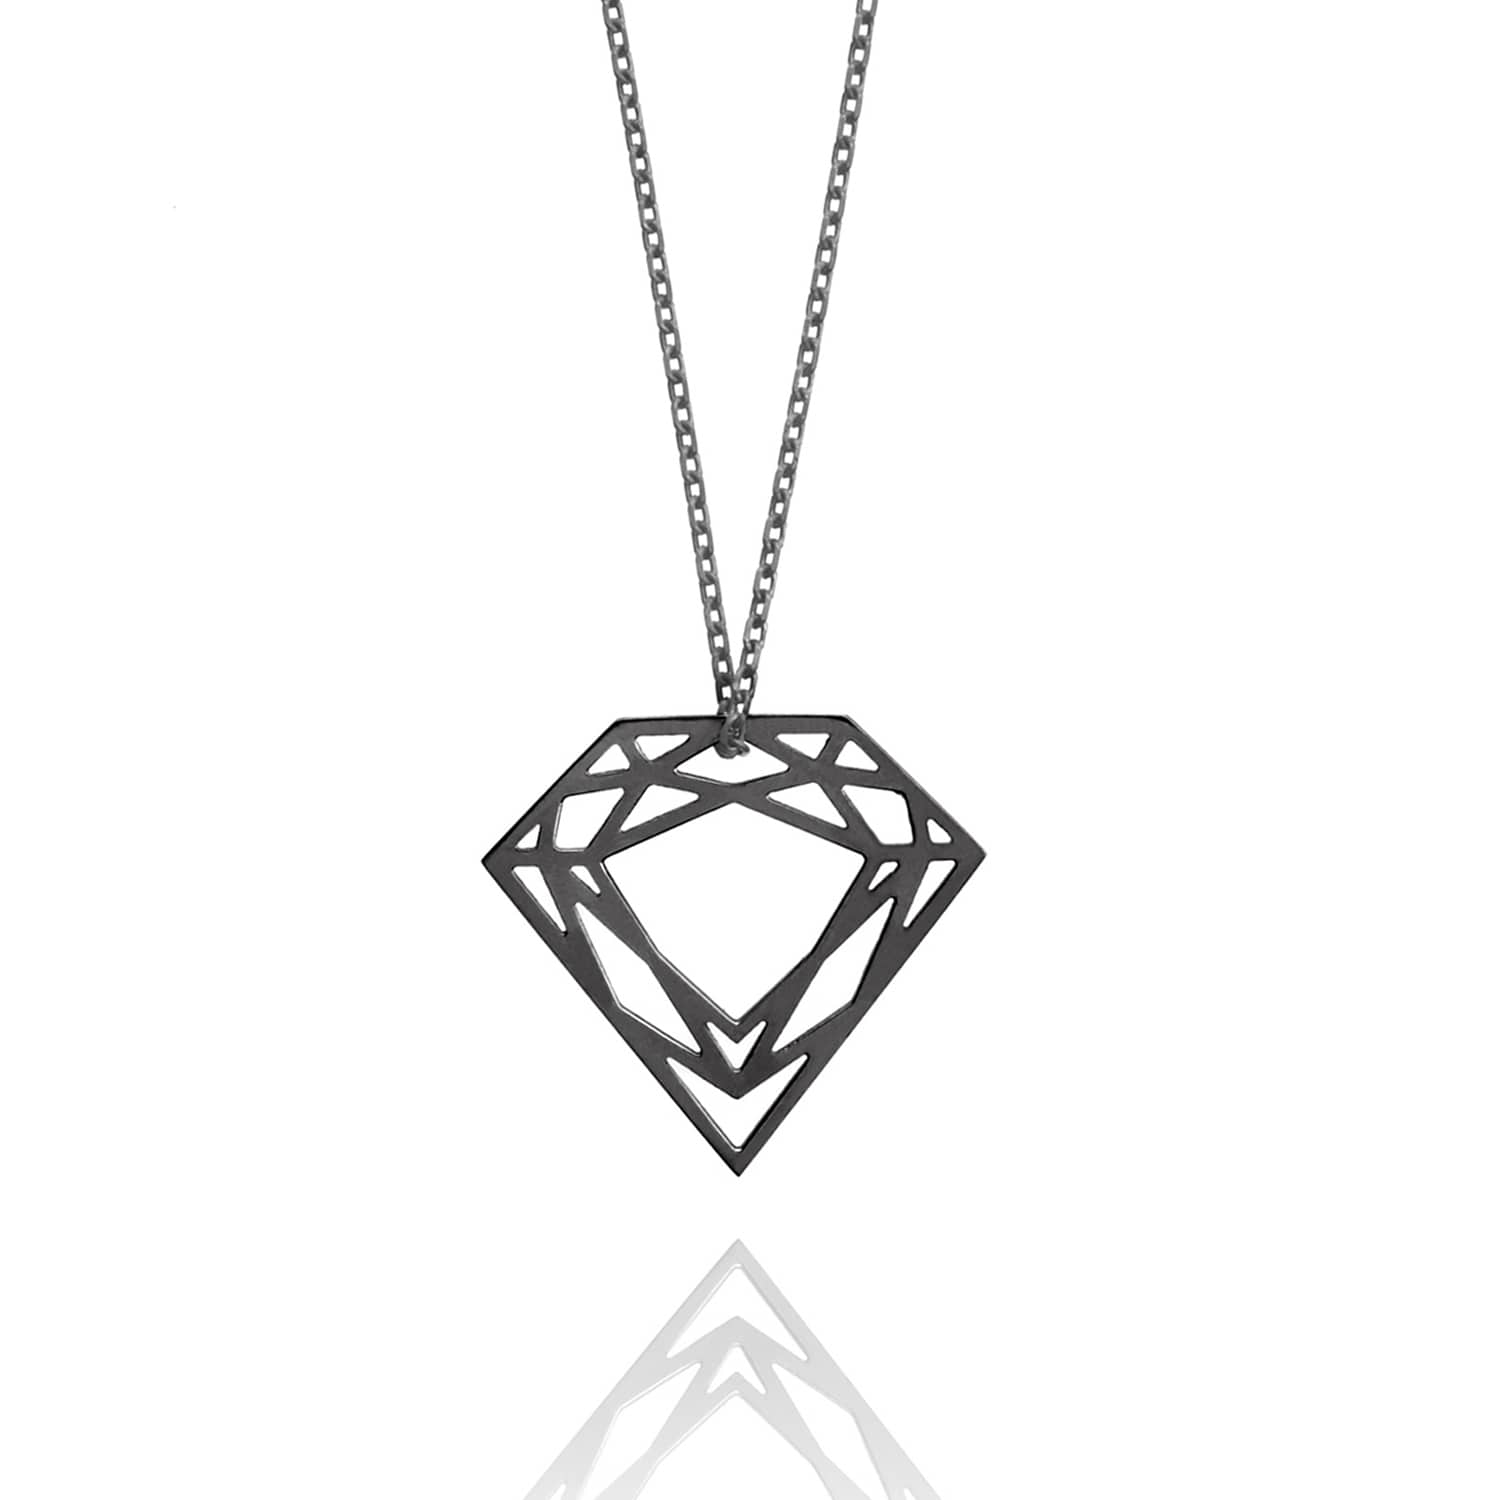 enlarged diamond necklace jewelry star kwiat black pendant products necklaces